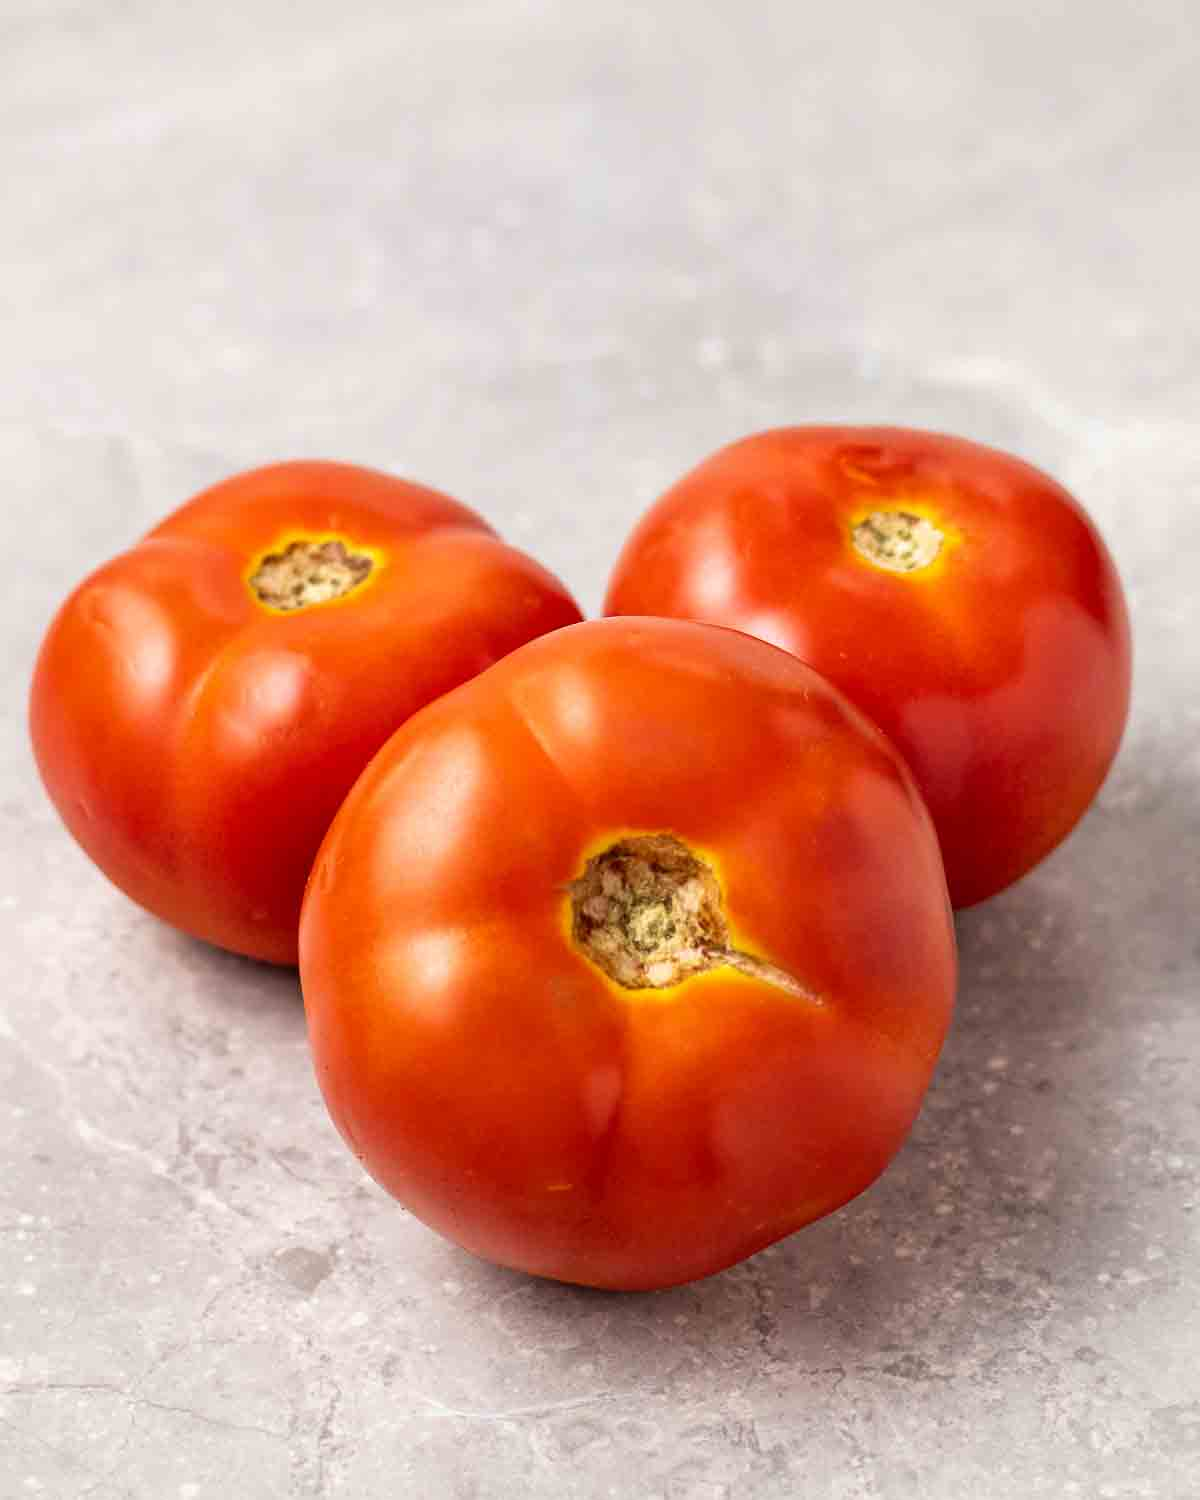 3 tomatoes arranged on a grey background.